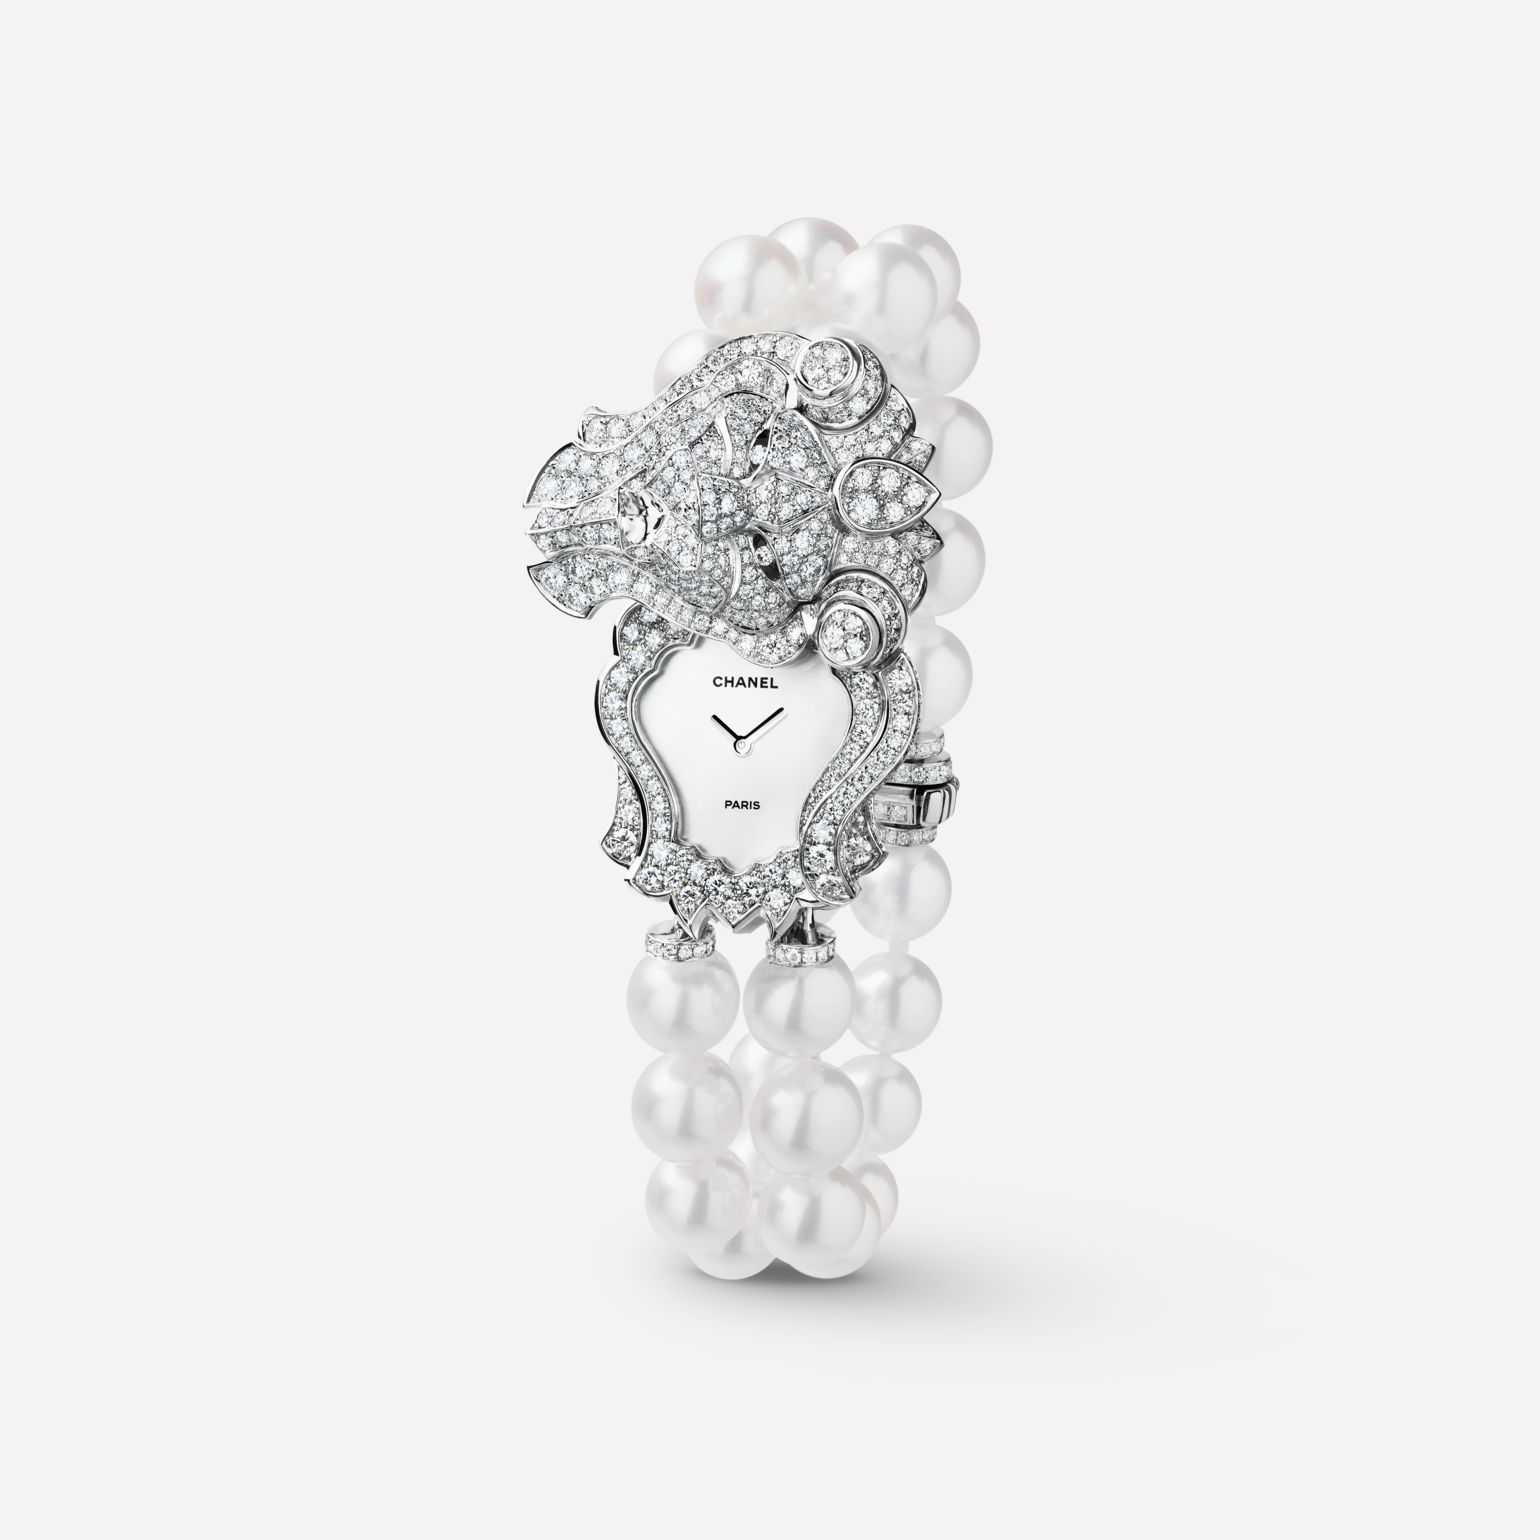 Sous le Signe du Lion Jewelry Watch Secret watch with lion motif in 18K white gold, diamonds, and cultured pearls